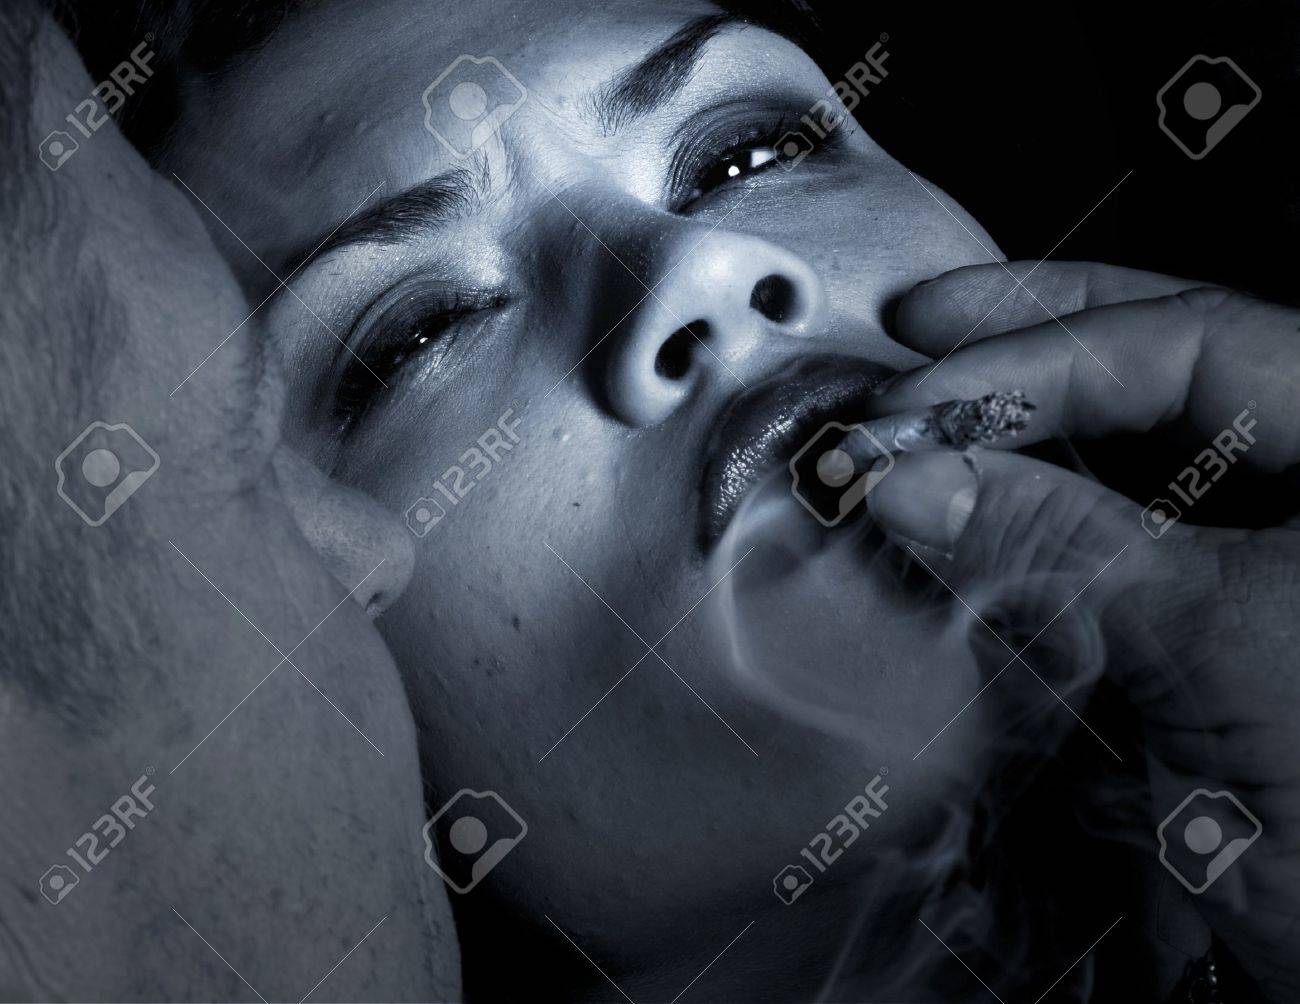 Striking Image of a man Seducing a woman into doing Drugs Stock Photo - 10947009